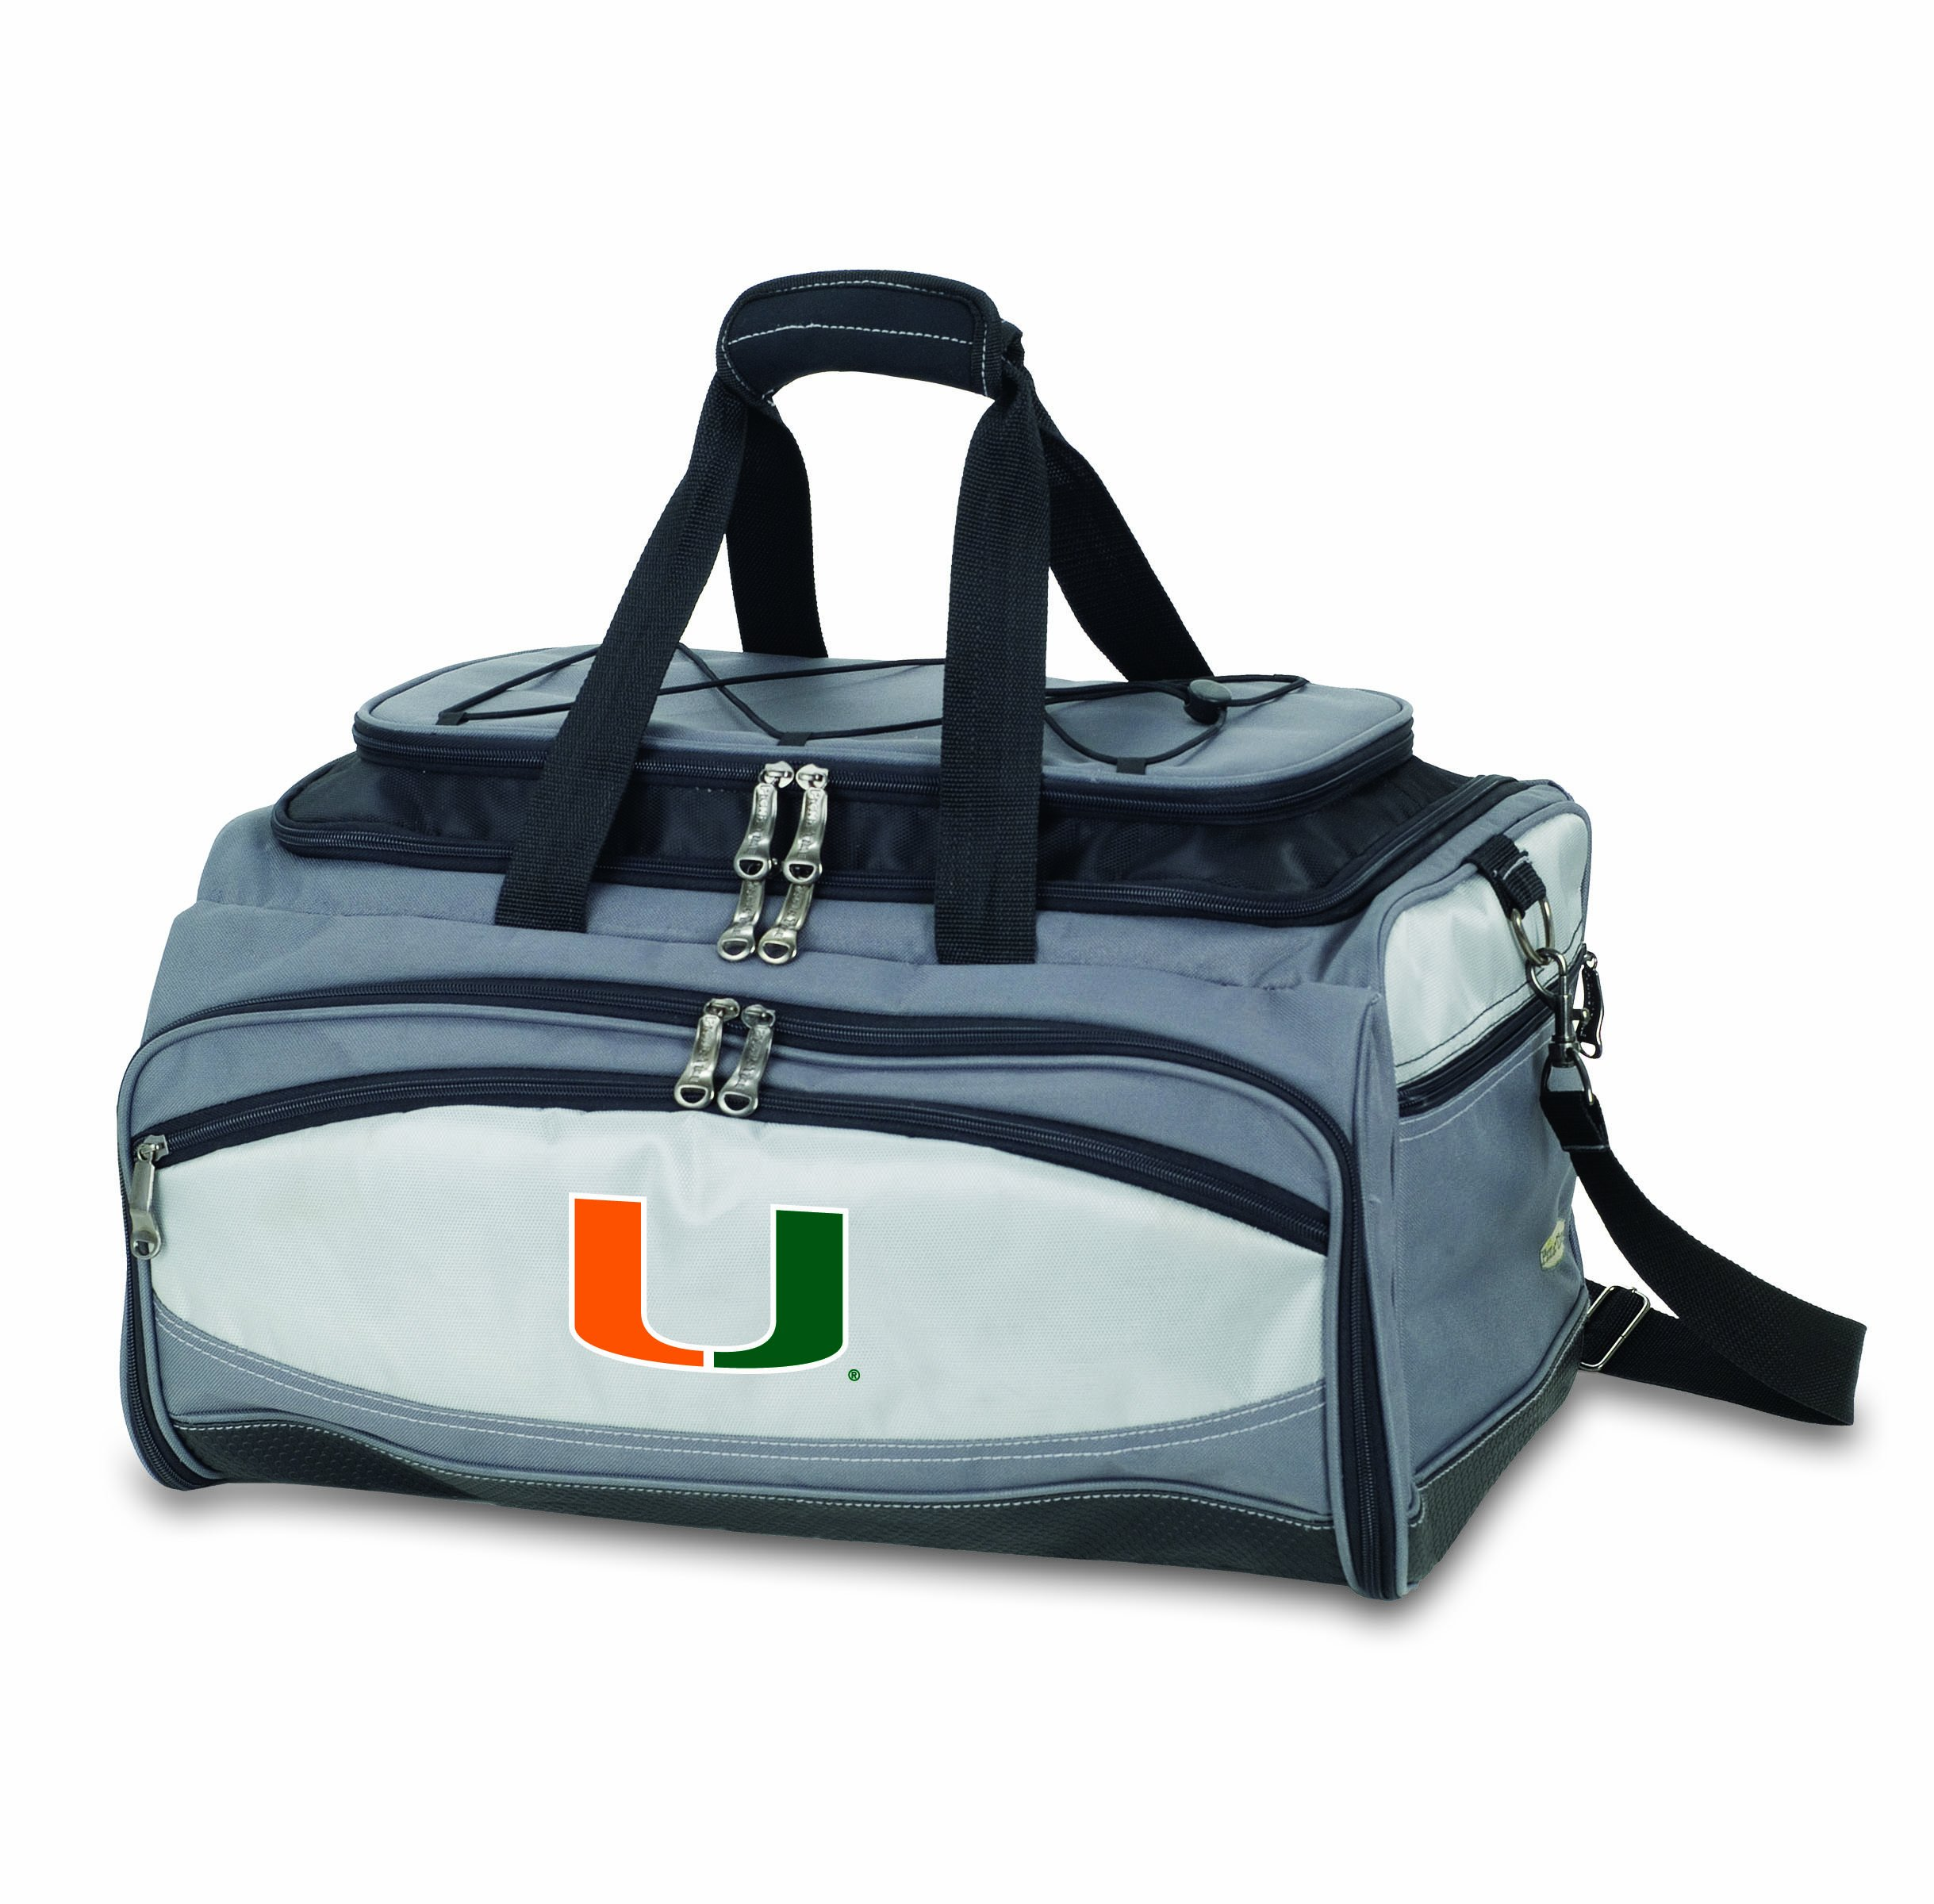 NCAA Miami Hurricanes Buccaneer Tailgating Cooler with Grill